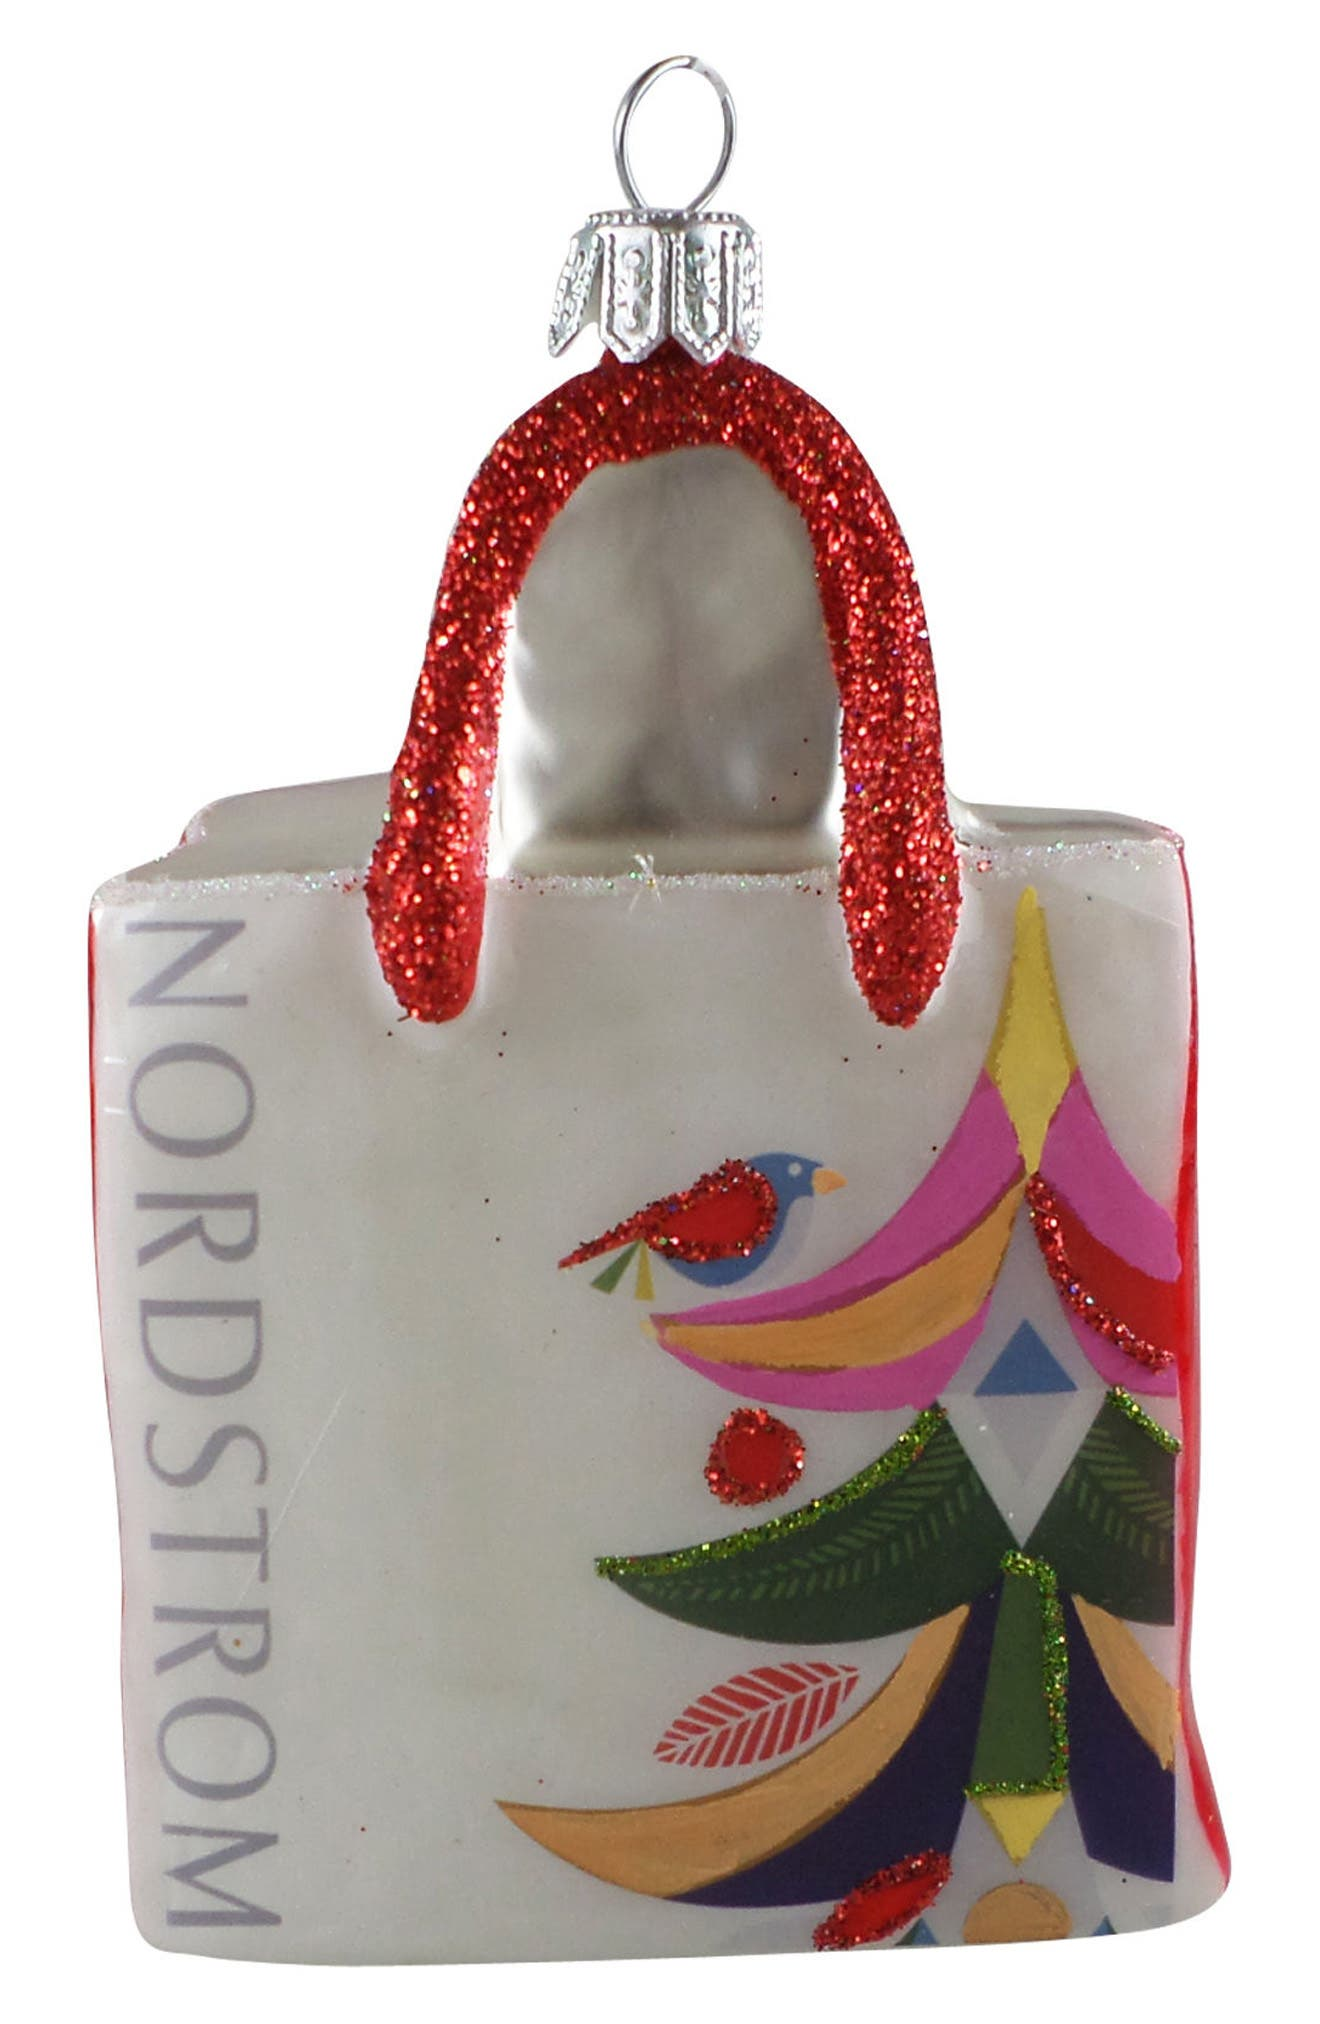 Alternate Image 1 Selected - Nordstrom at Home Nordstrom Shopping Bag 2017 Ornament